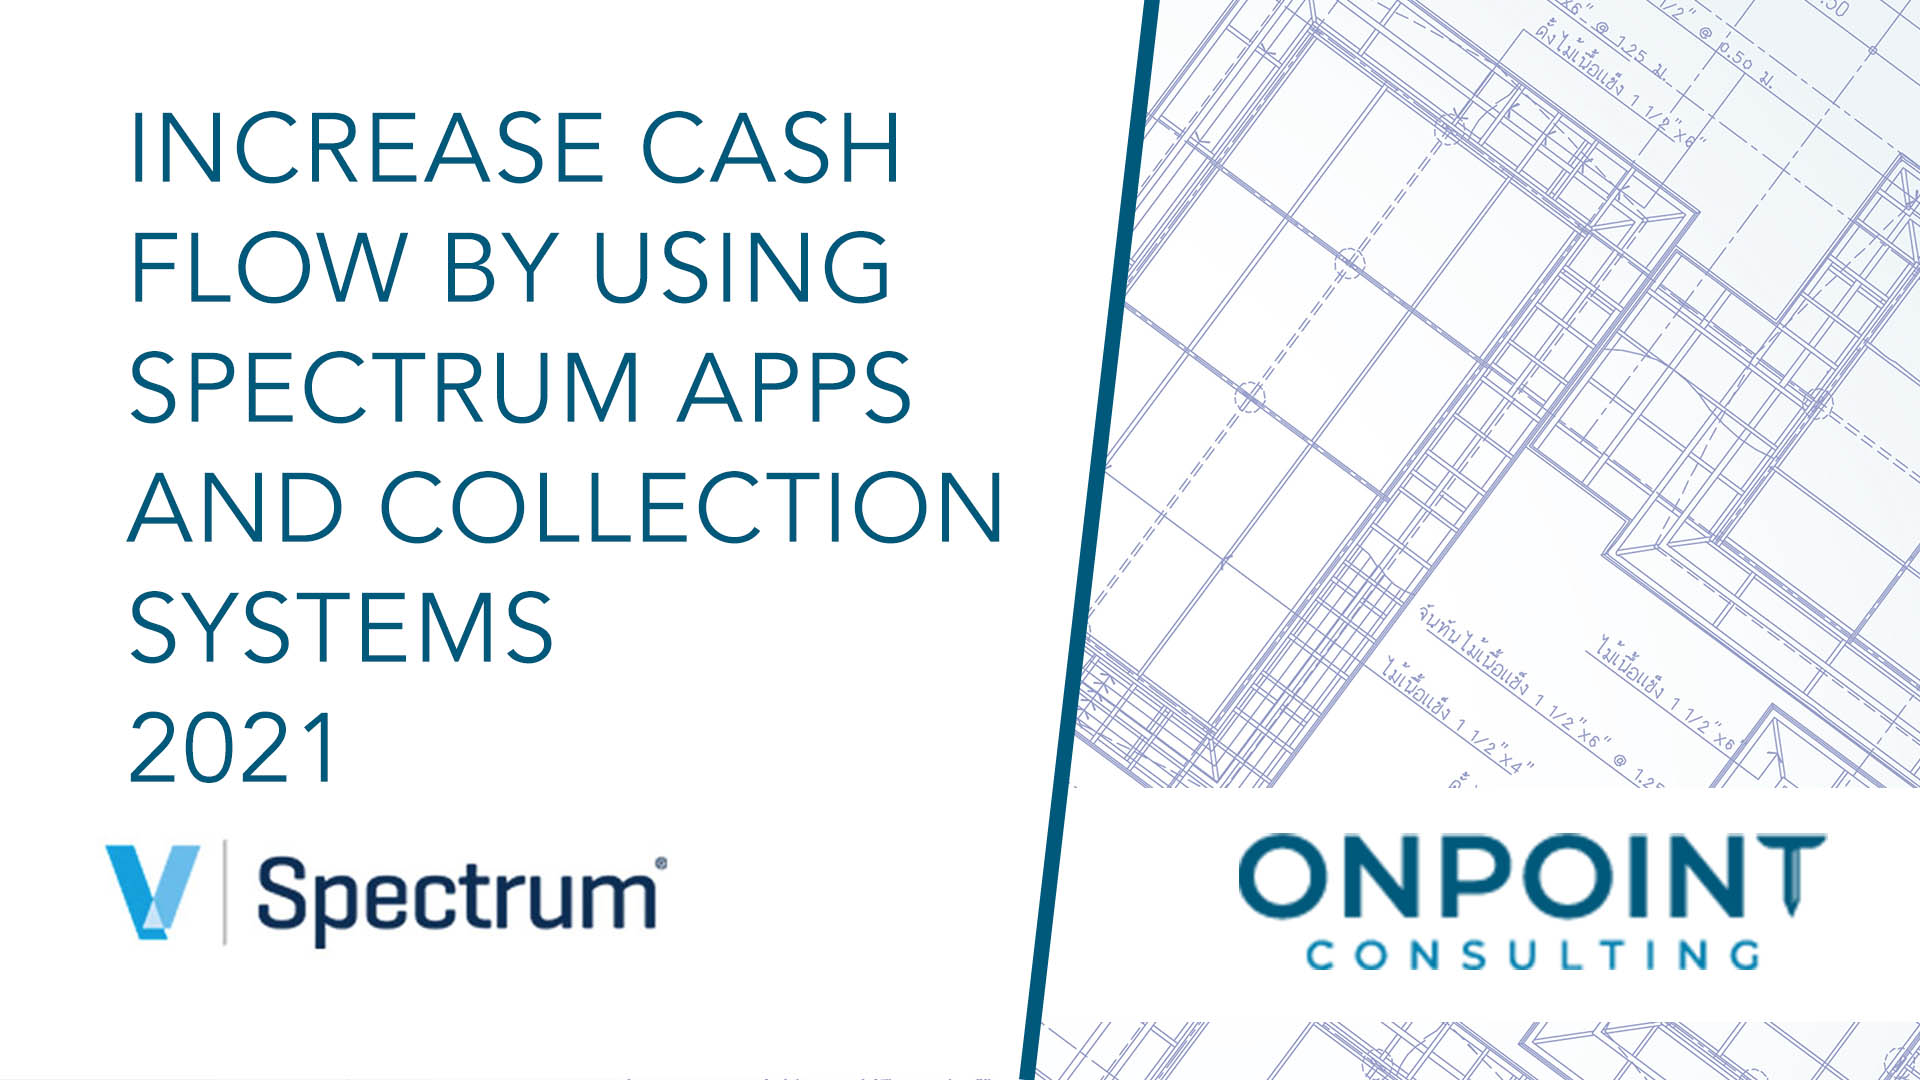 Increase Cash Flow by Using Spectrum Apps and Collection Systems